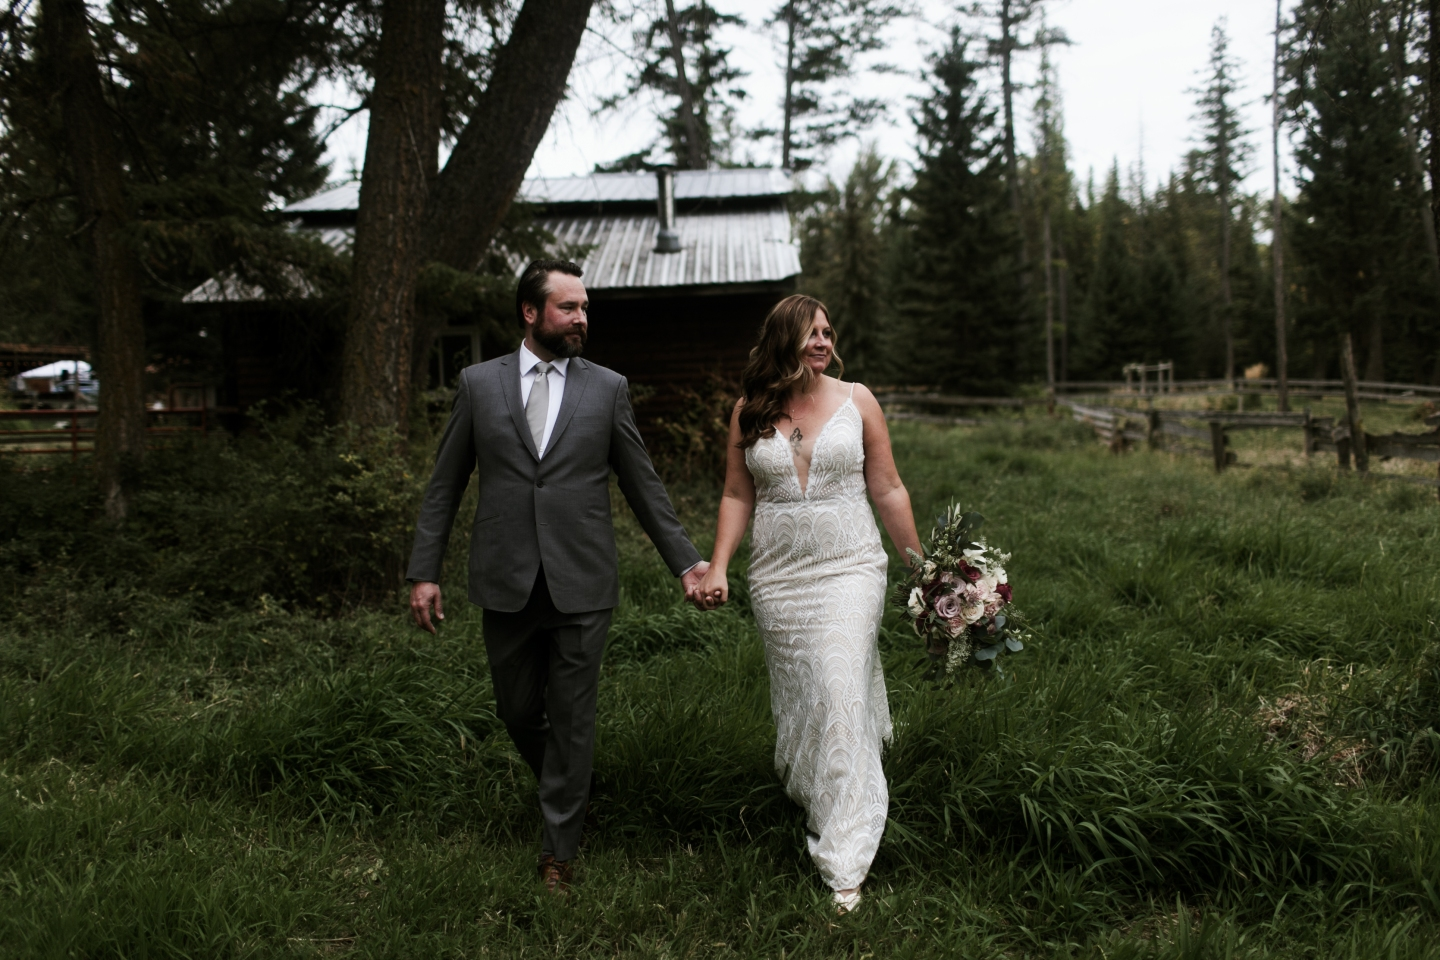 Rustic Farm Wedding in Montana